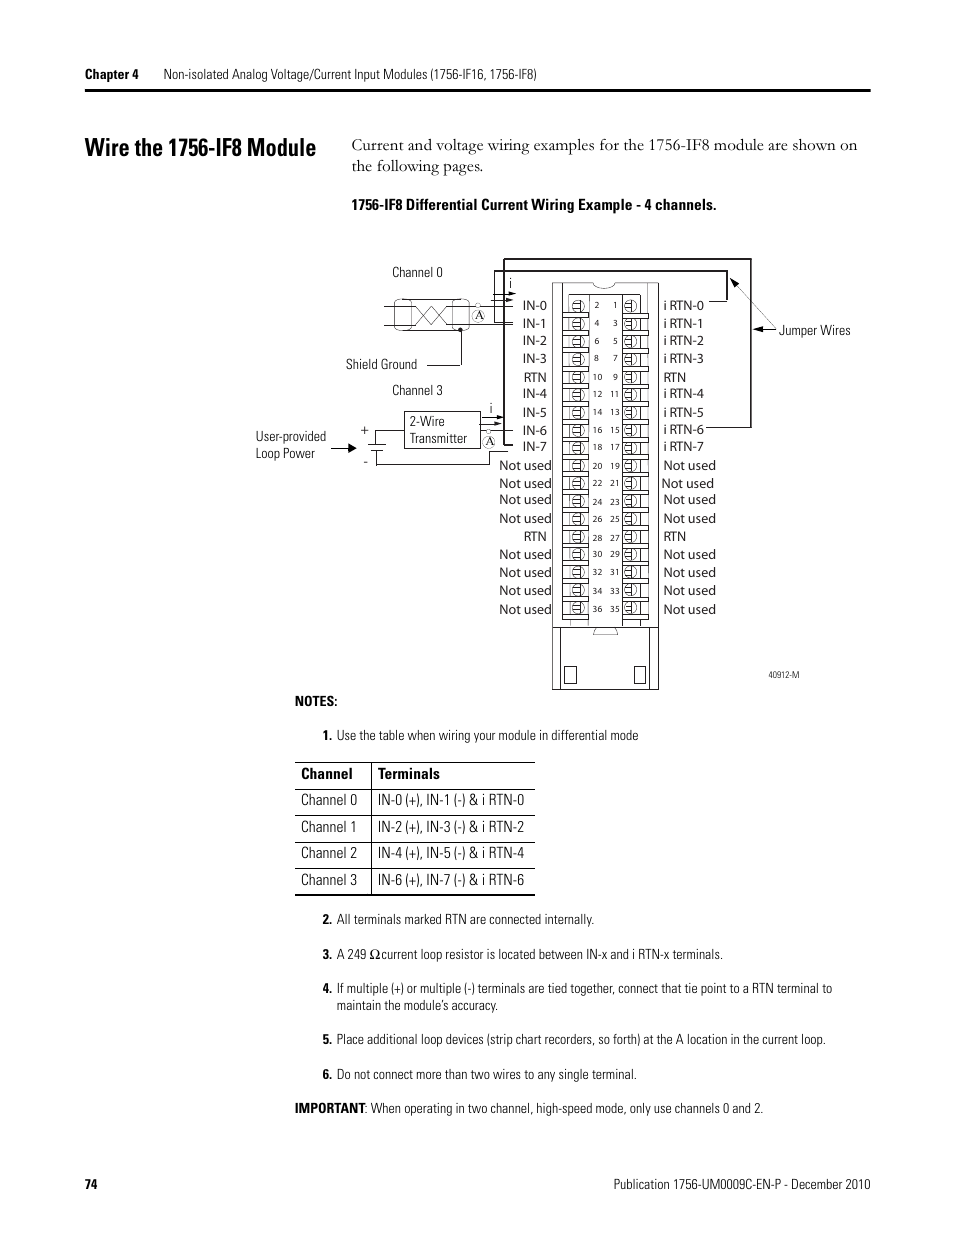 rockwell automation 1756 xxxx controllogix analog i_o modules page74 wire the 1756 if8 module rockwell automation 1756 xxxx 1756 if8 wiring diagram at reclaimingppi.co